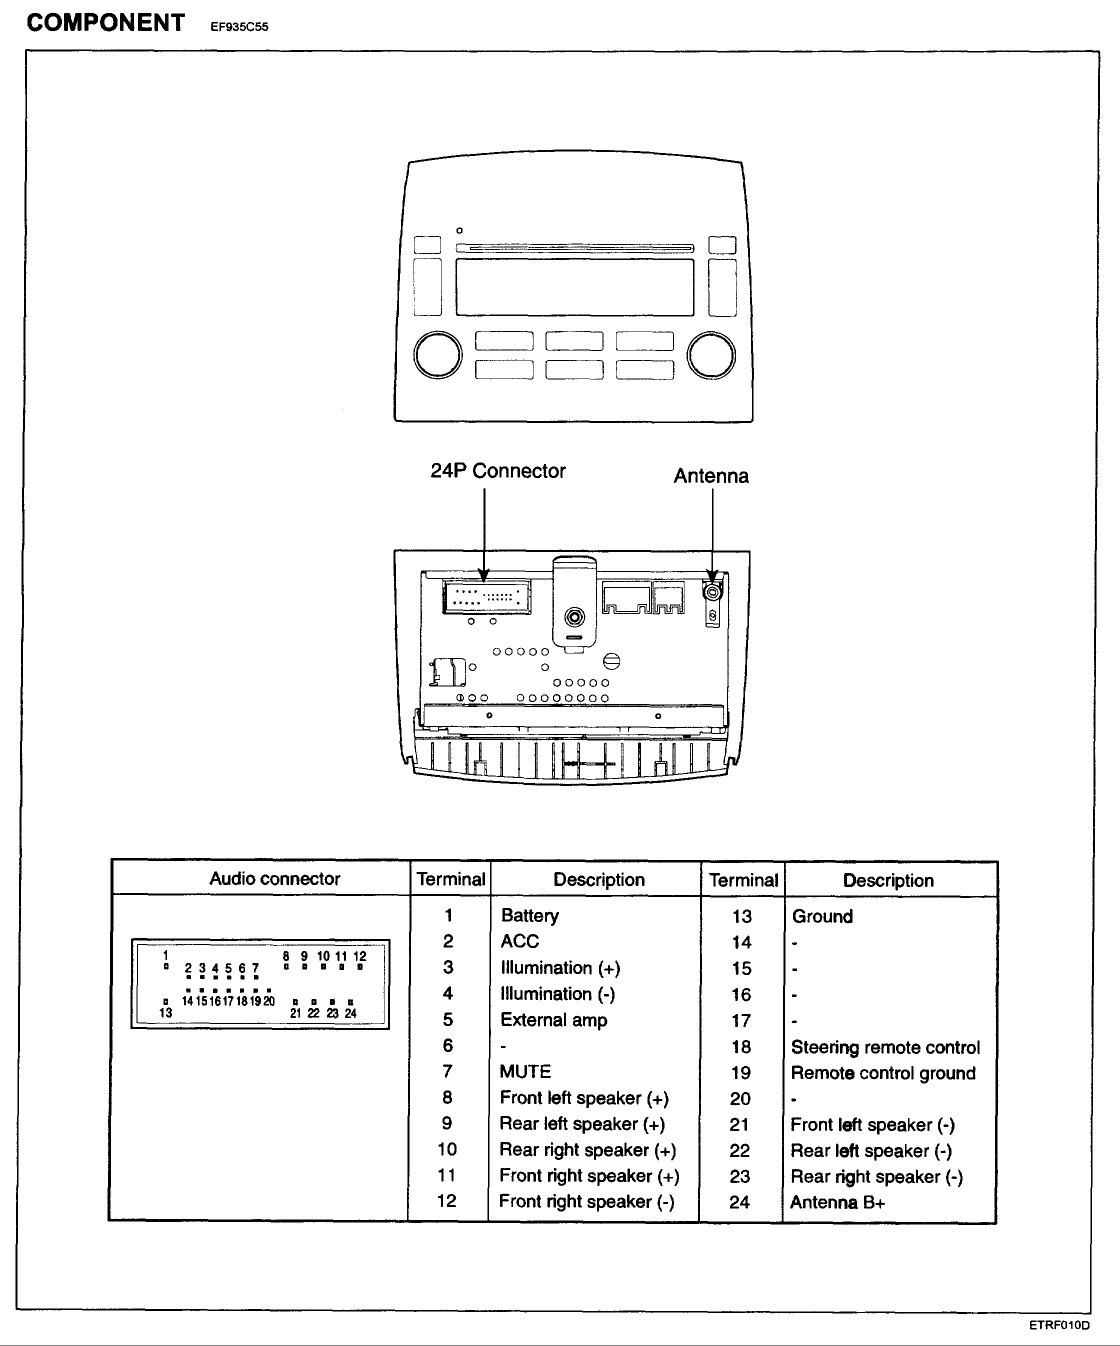 hight resolution of 09 hyundai elantra stereo wiring wiring diagram used 2002 hyundai santa fe radio wiring diagram 02 hyundai elantra stereo wire diagram